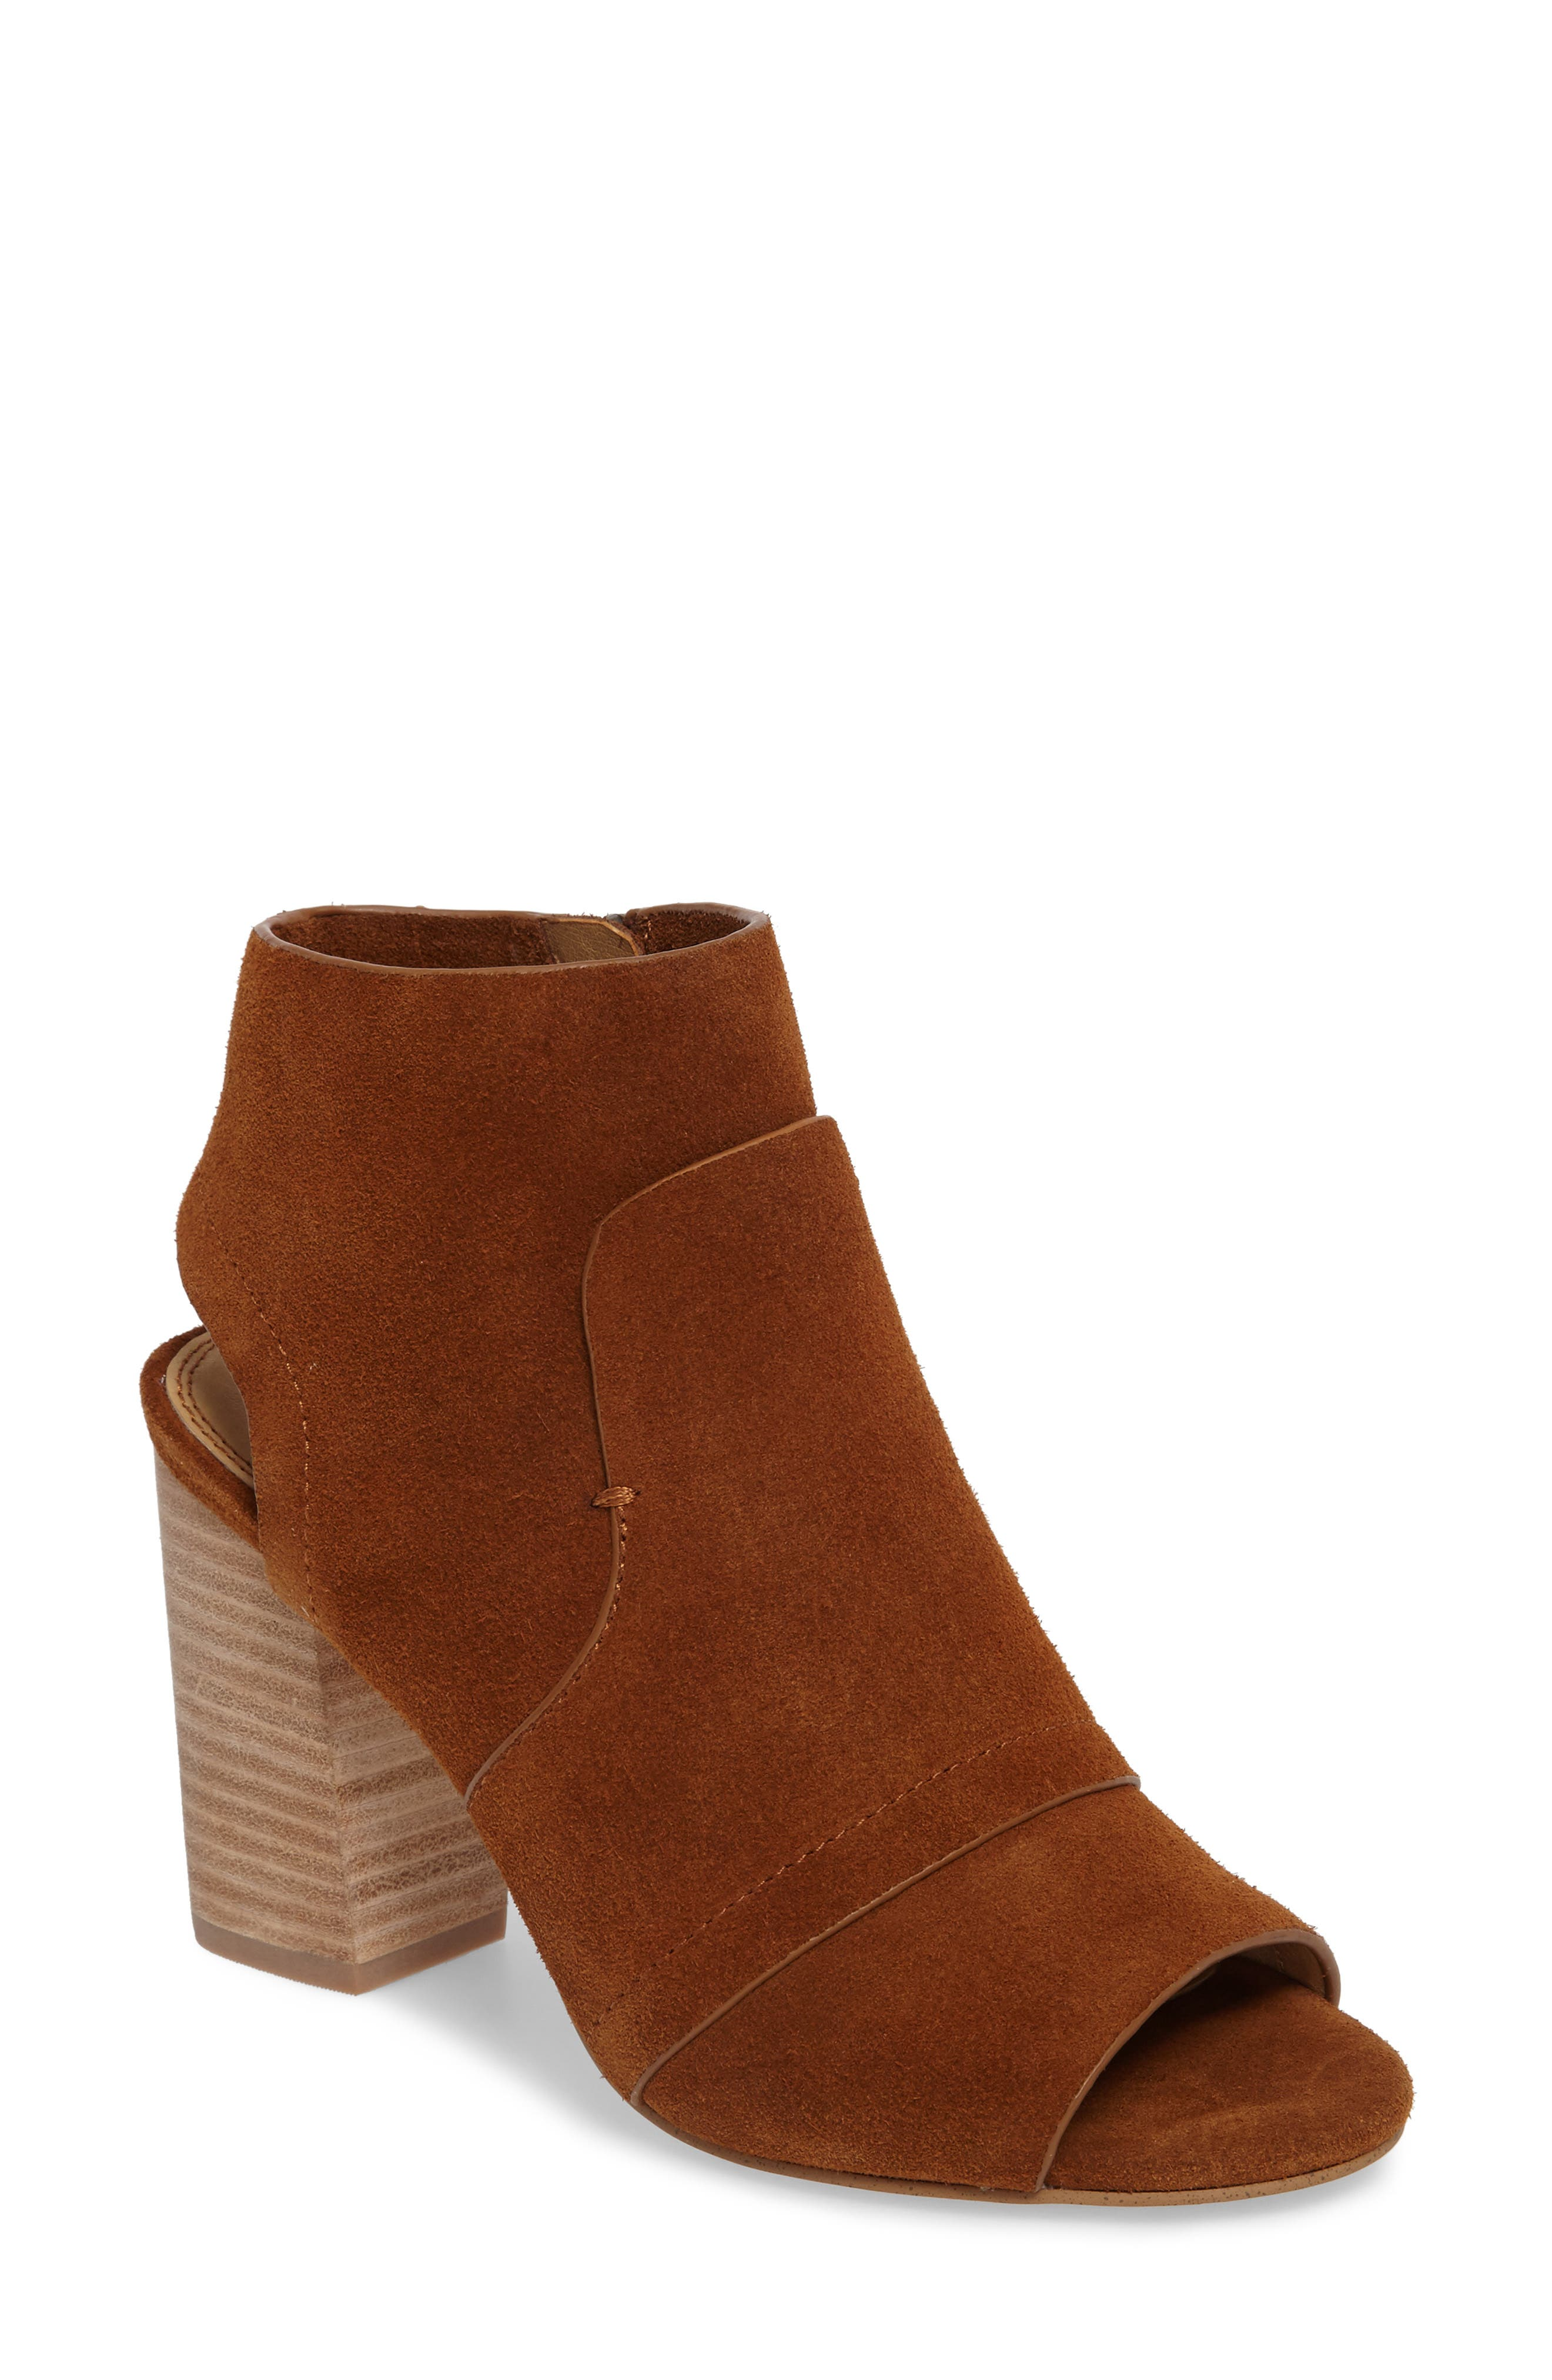 Splendid Darelene II Peep Toe Bootie (Women)